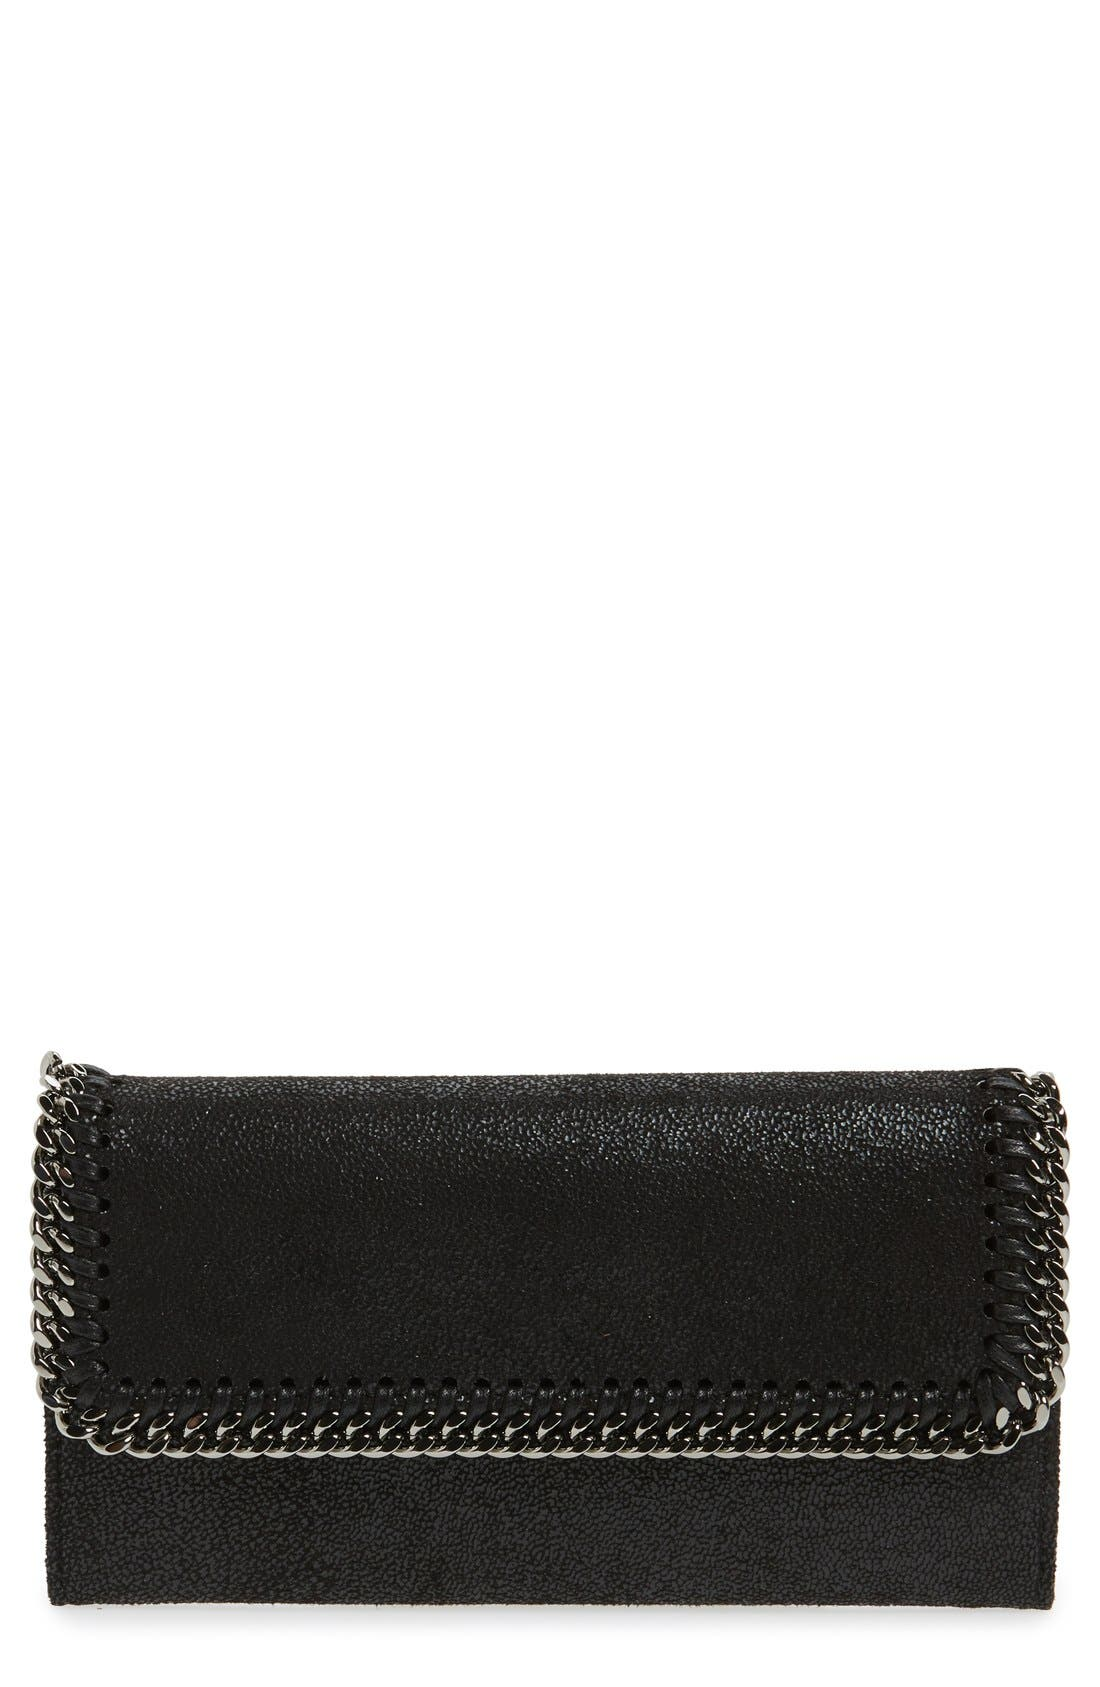 STELLA MCCARTNEY 'Falabella - Rainbow POP' Faux Leather